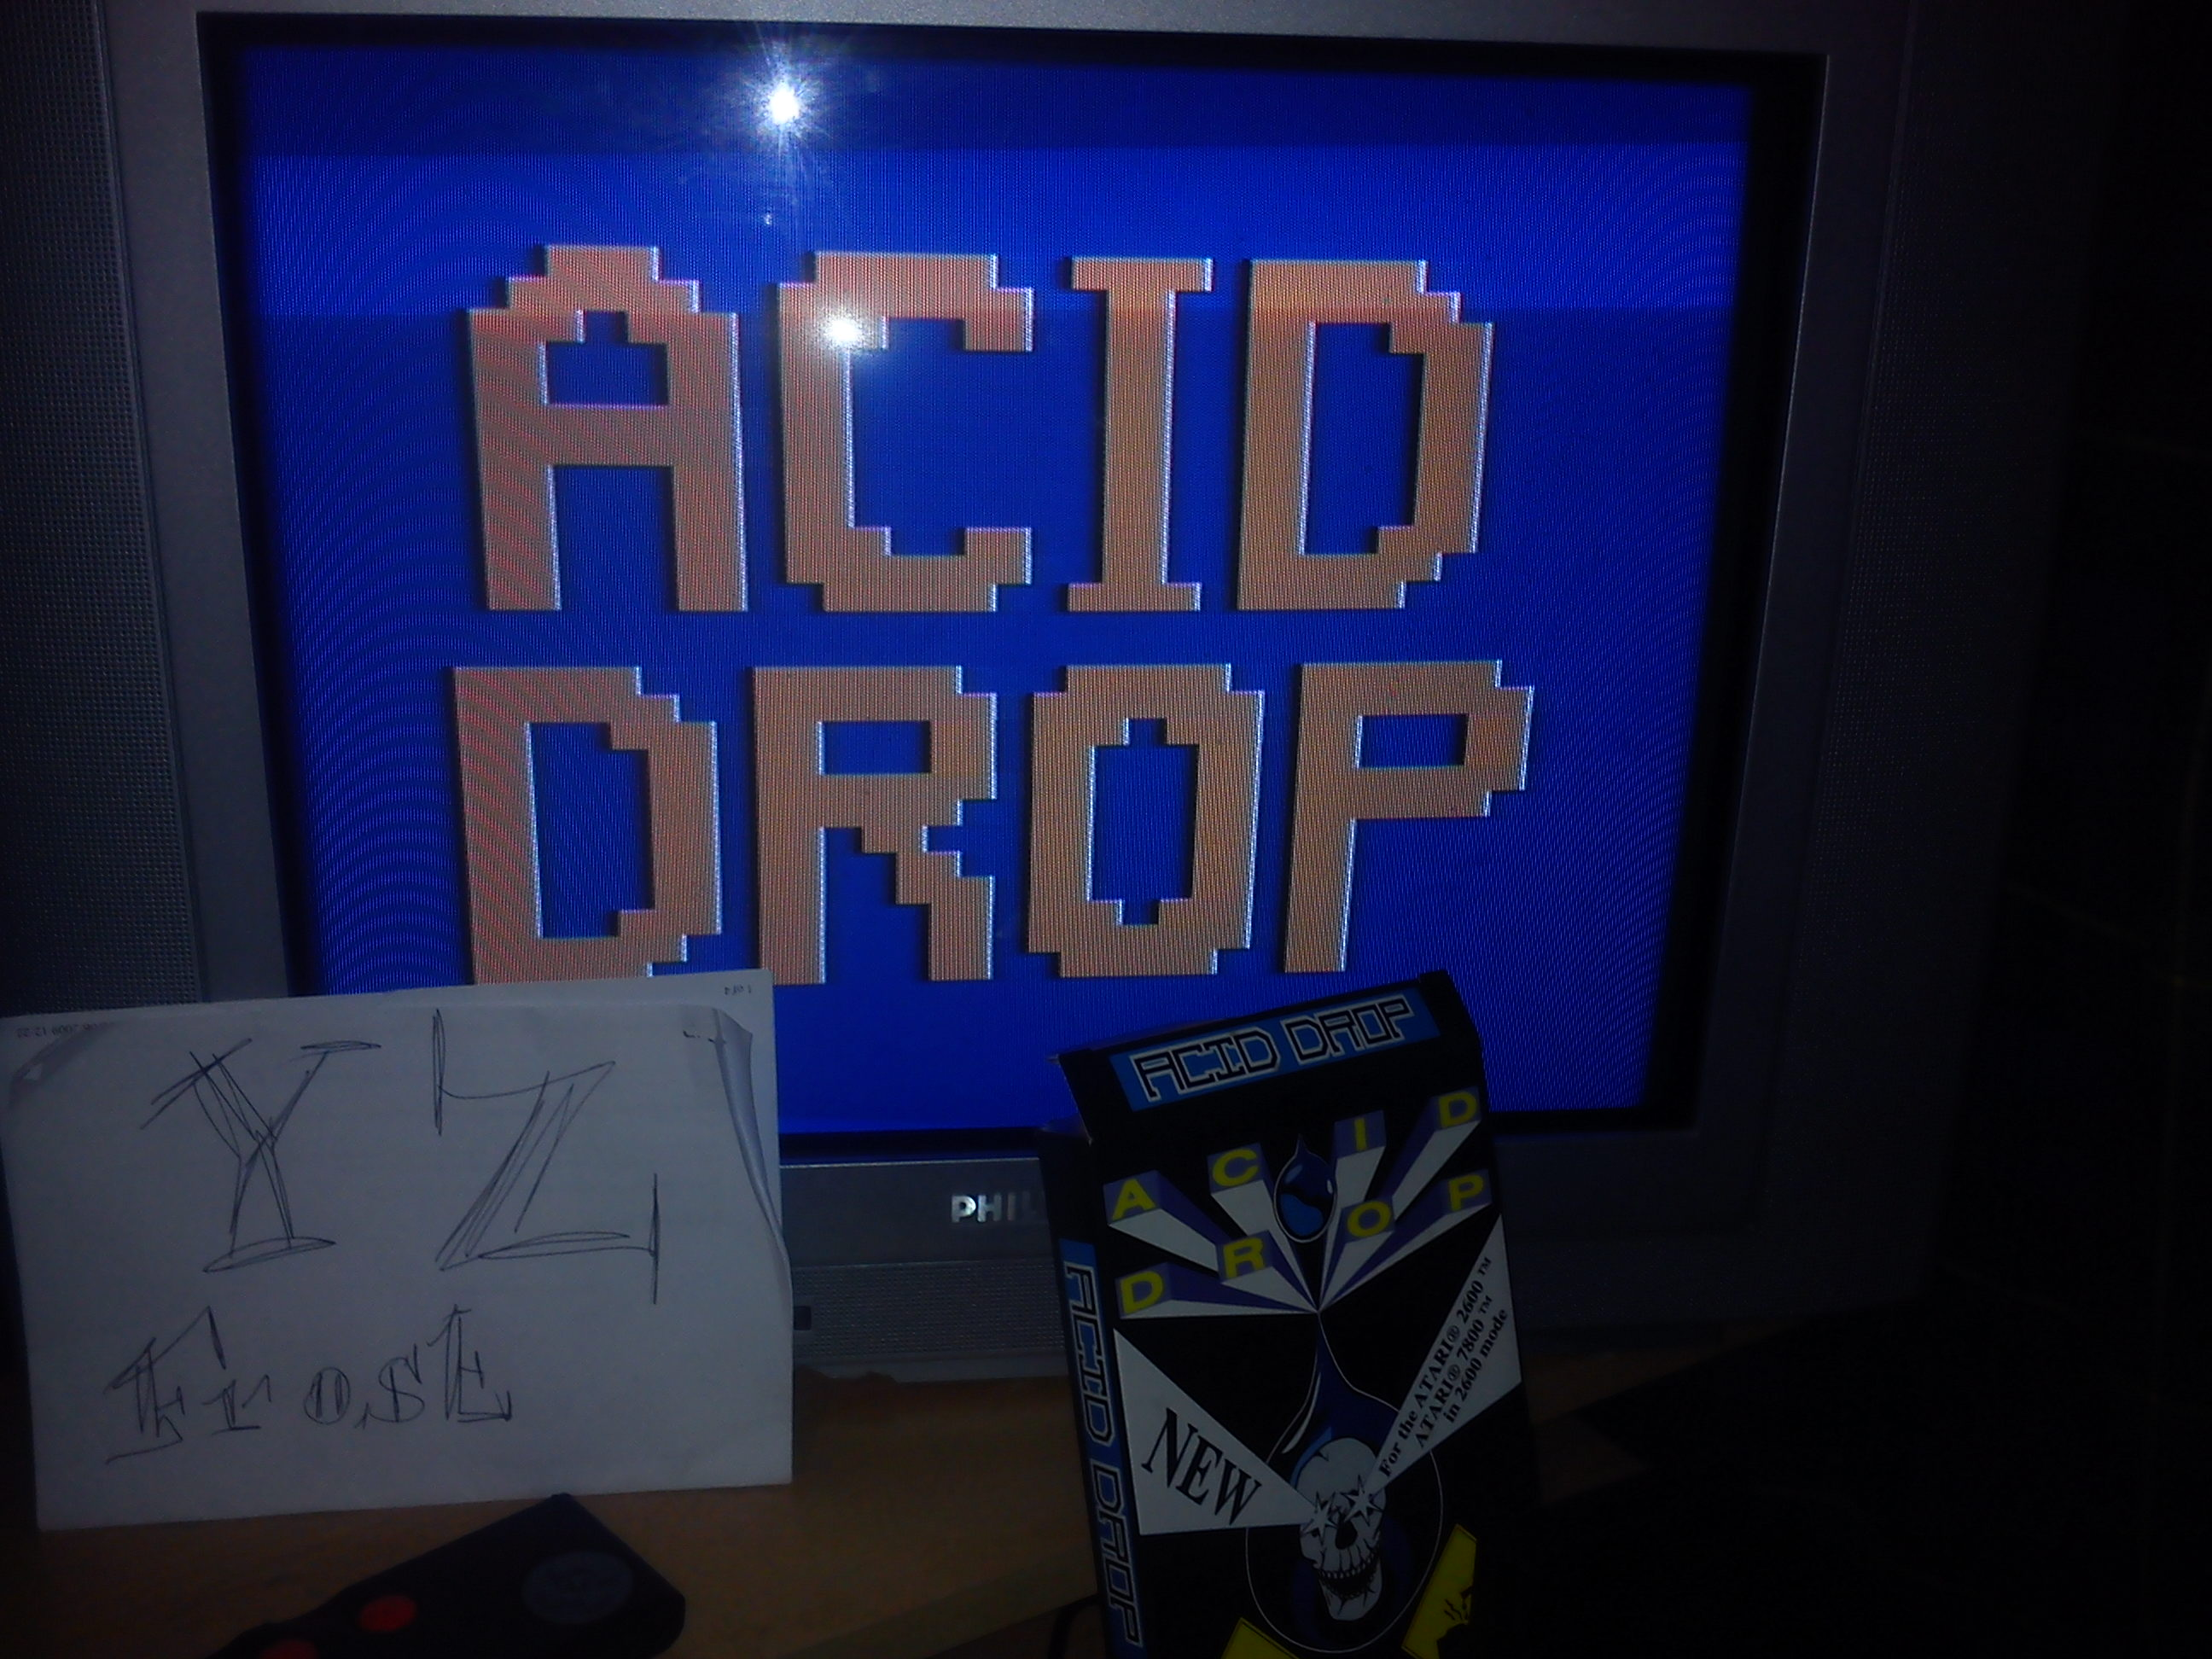 Acid Drop 136,200 points